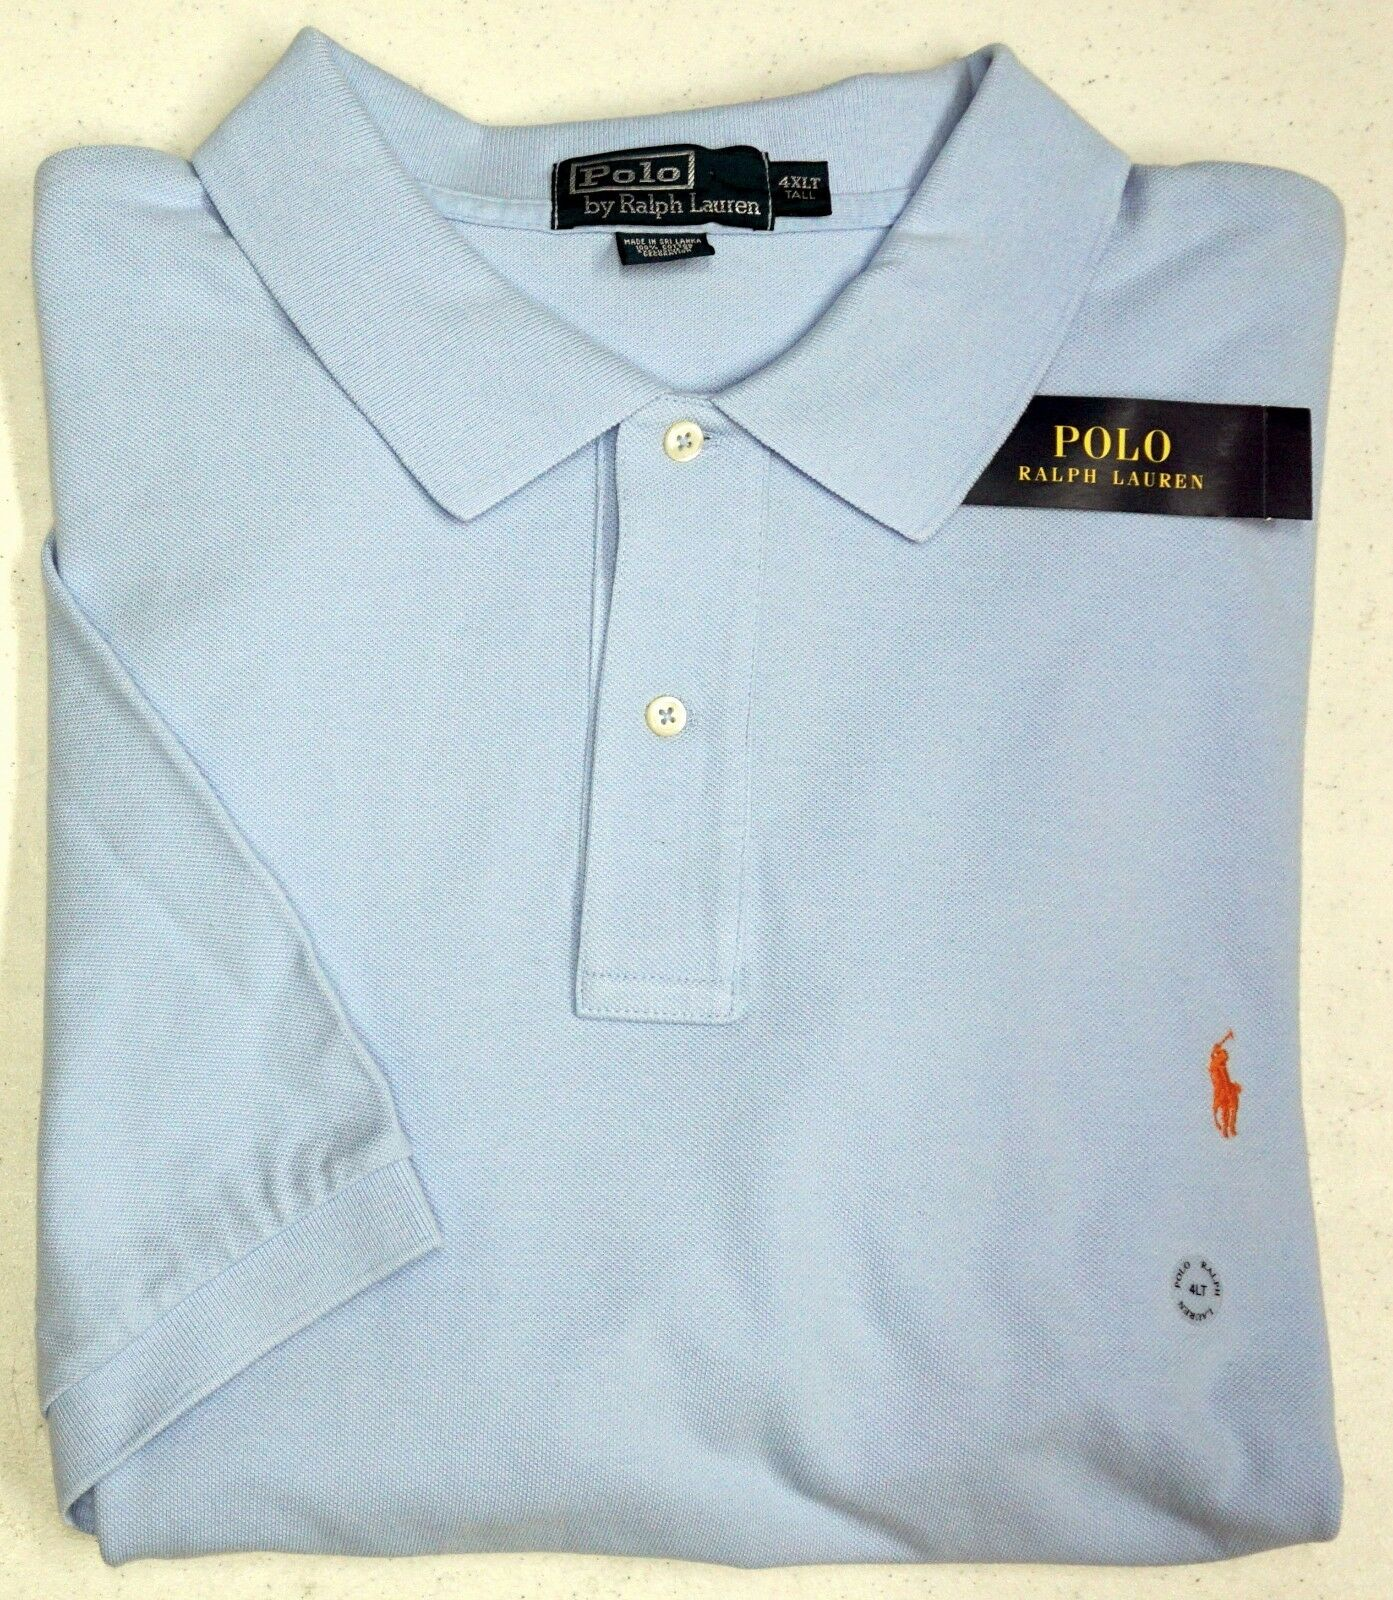 NWT  POLO Ralph Lauren SS Mesh Shirt Mens XLT 4XLT Light bluee NEW